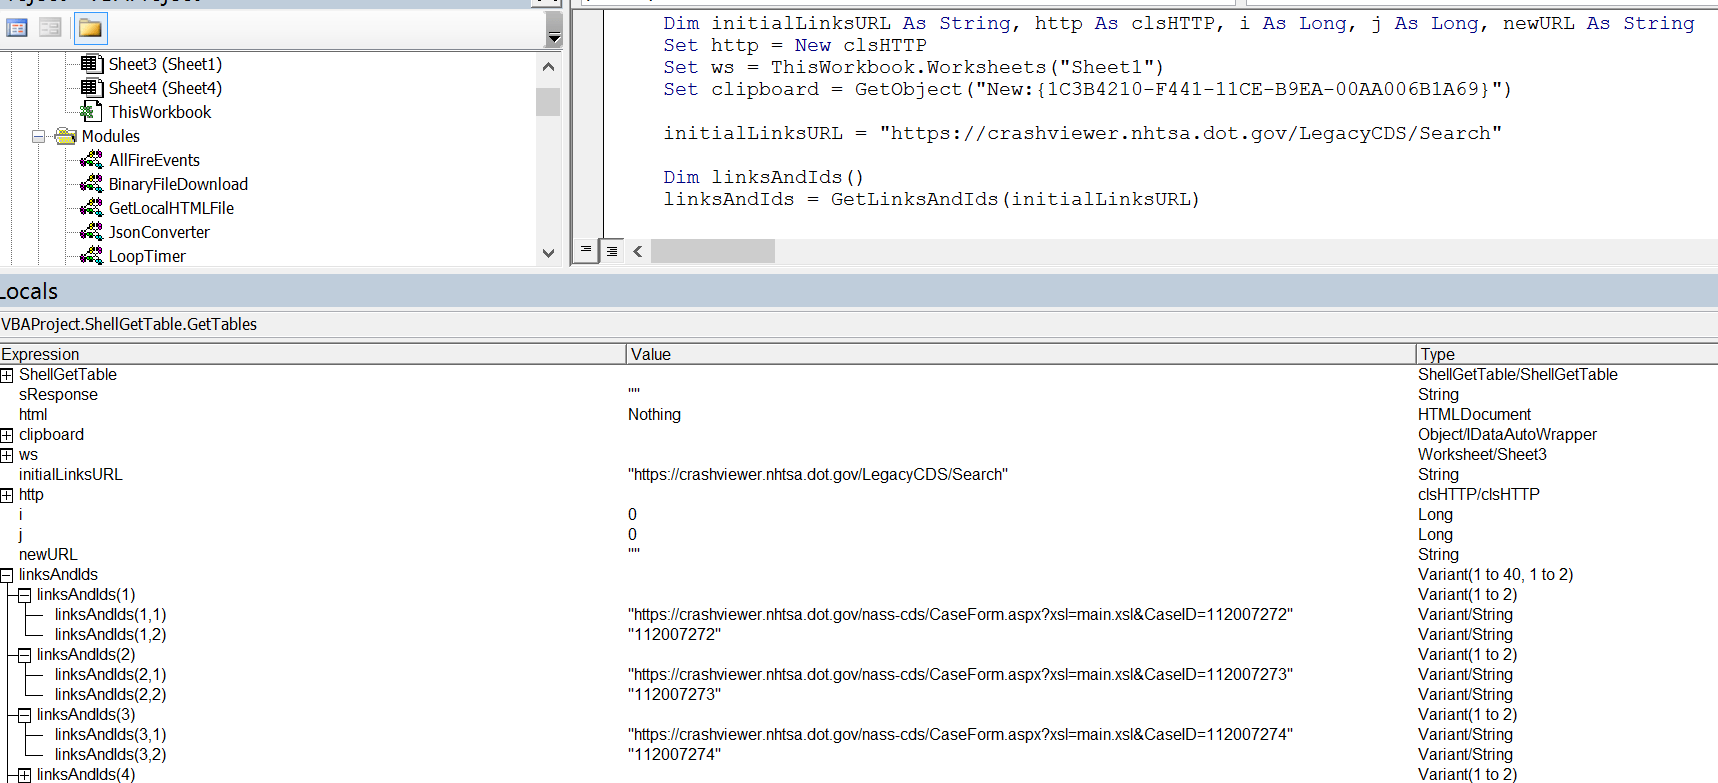 Vba Cannot Get Data From Html With Telementsbytag Nor